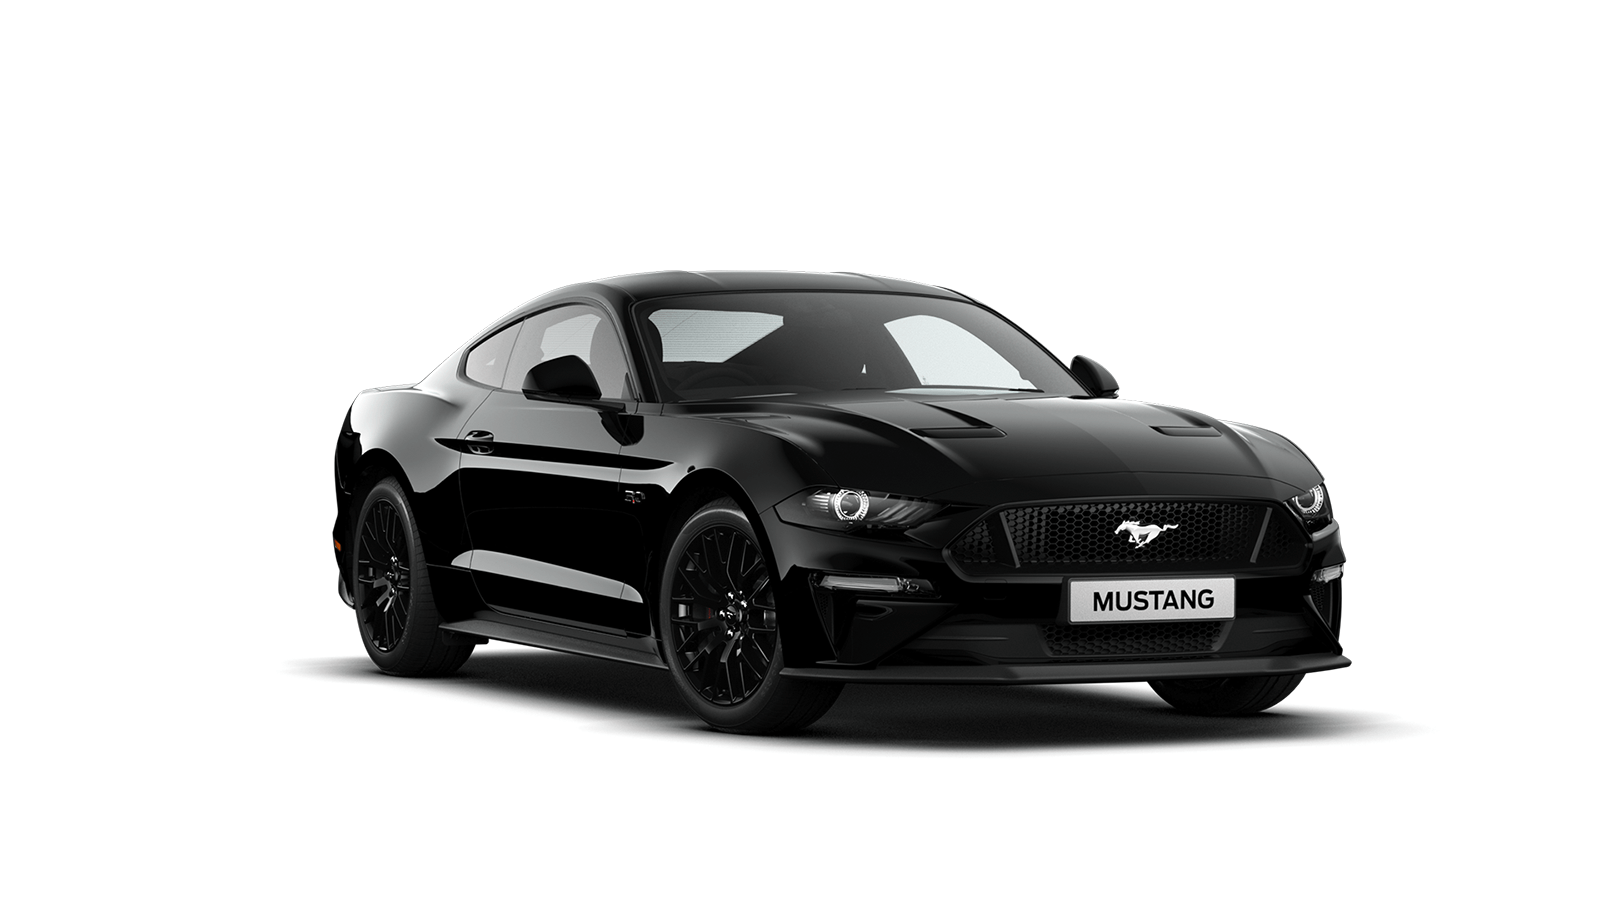 NEW MUSTANG 5.0 V8 GT Fastback in Shadow Black